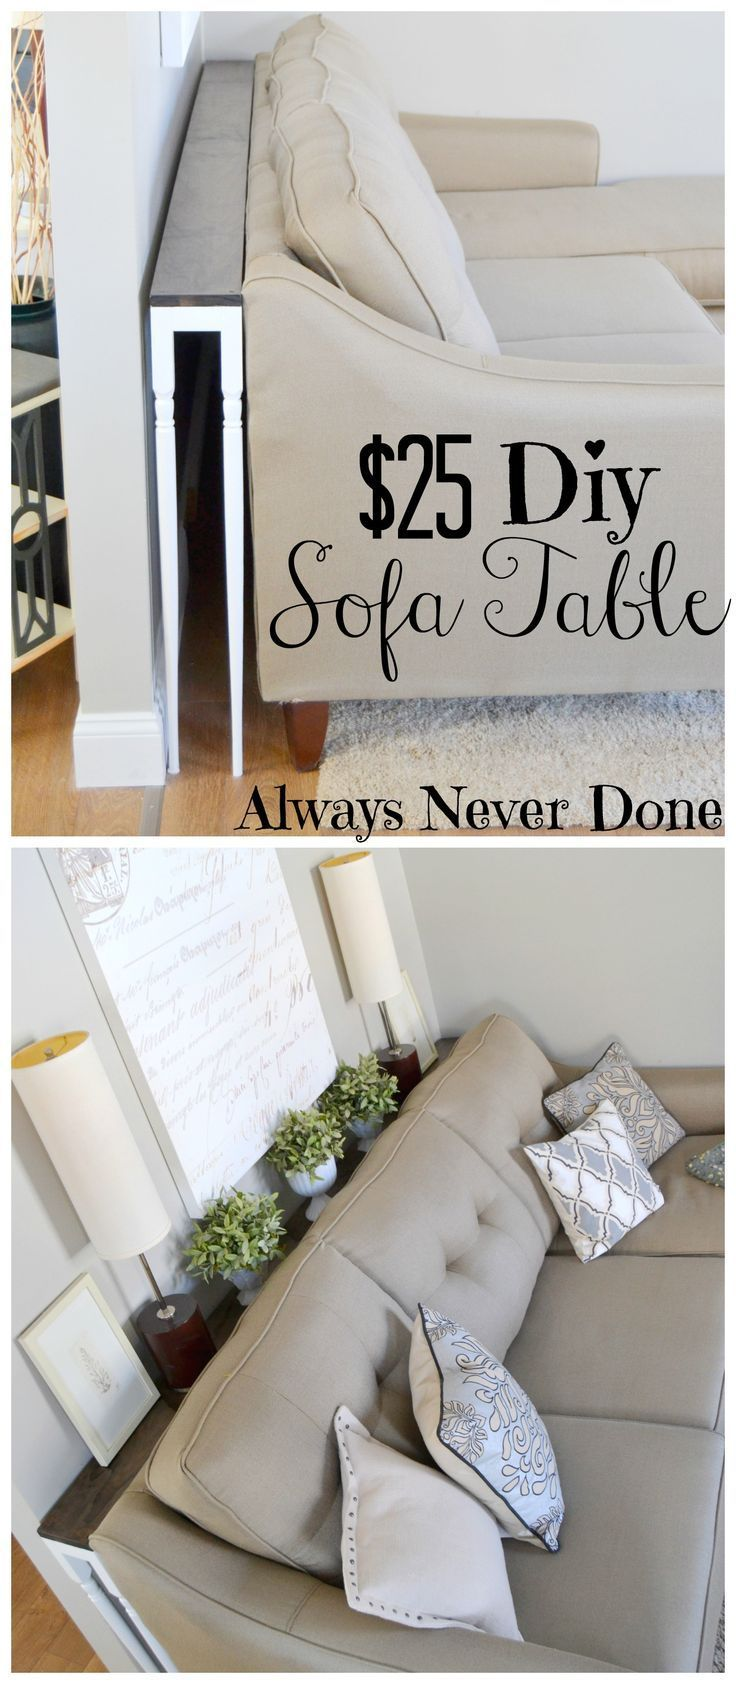 Diy Sofa Table For 25 Using Stair Rails As Legs I Love This Ides Makes It Easy To Each Plugs Behind The Couch Too So They Do Diy Sofa Table Diy Sofa